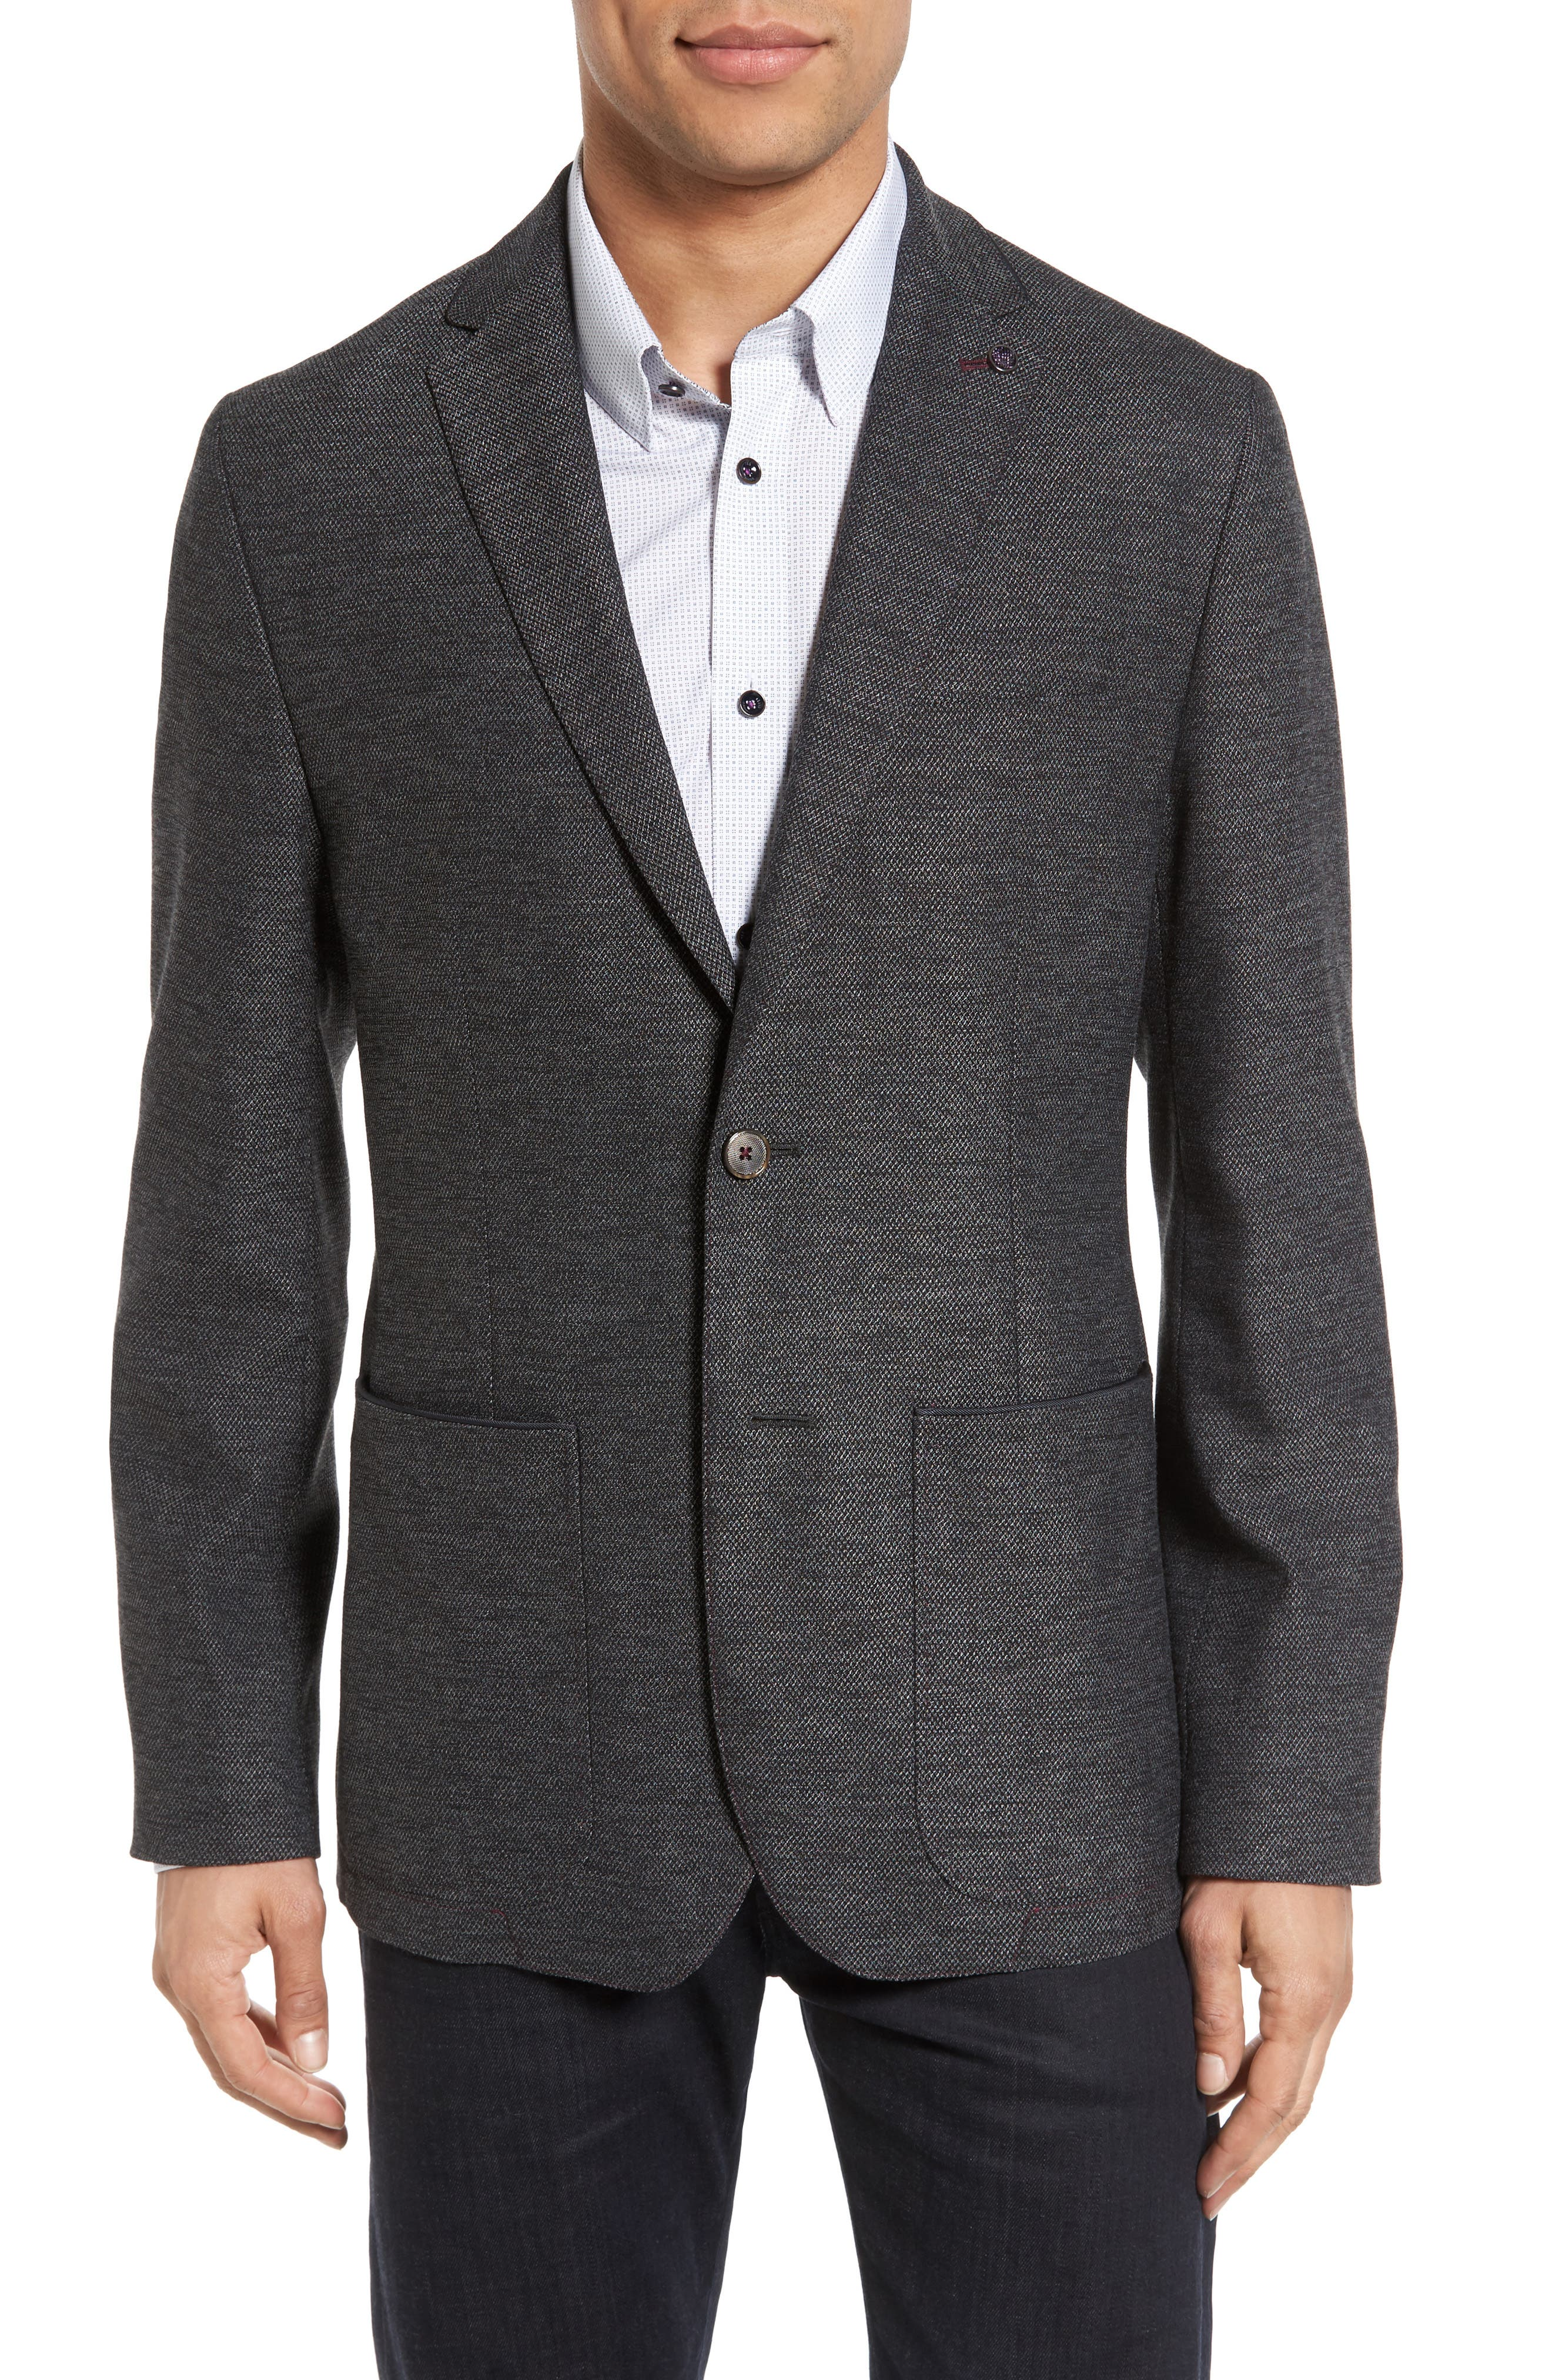 TED BAKER LONDON, Finland Buggy Modern Slim Fit Jacket, Main thumbnail 1, color, 010